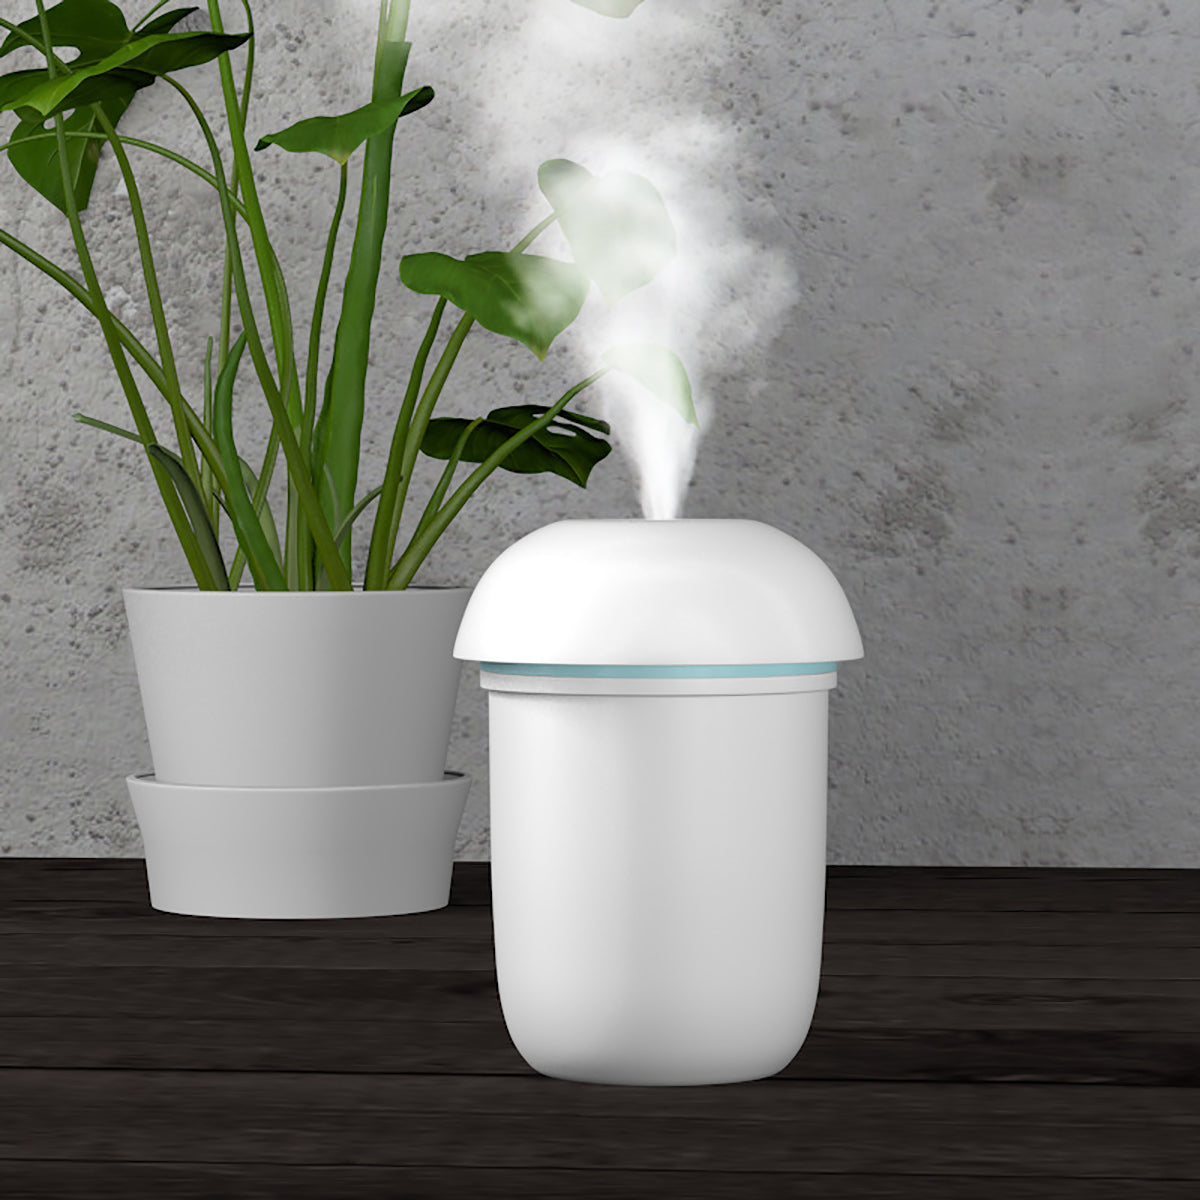 Minifier™ the Compact USB Powered Humidifierwith Seven LED Colors